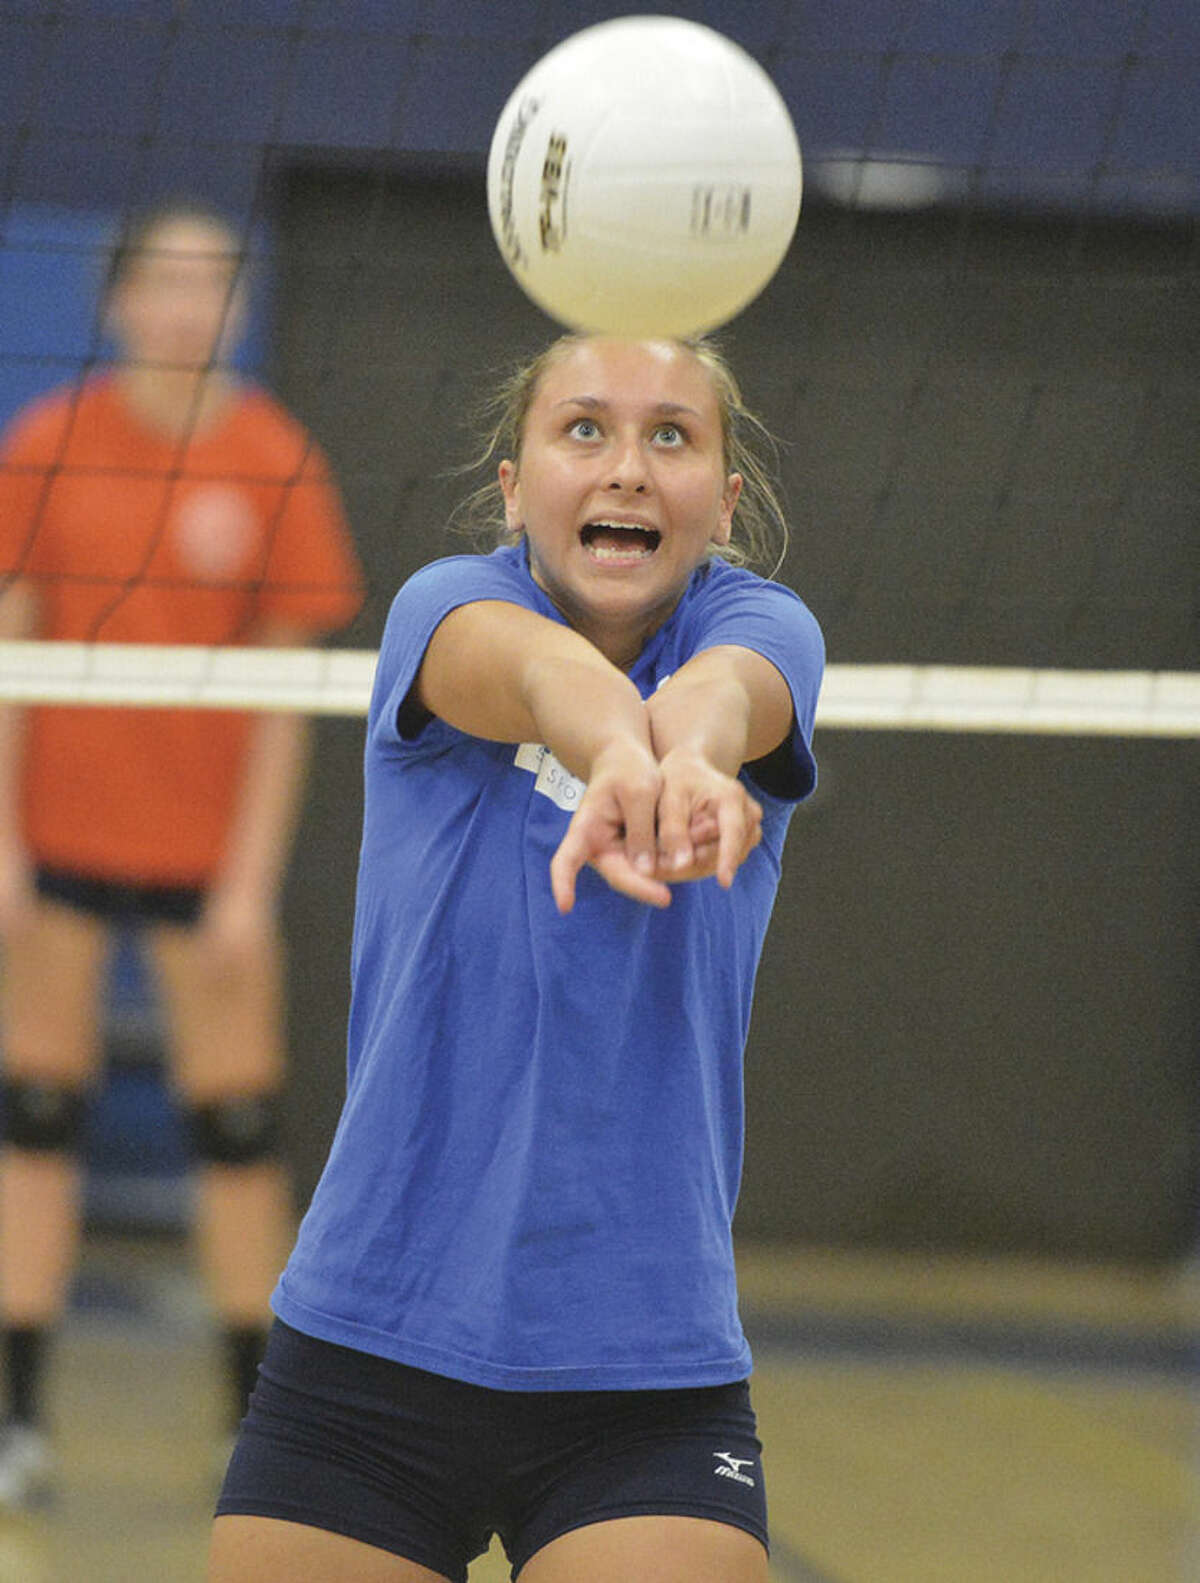 Hour Photo/Alex von Kleydorff Staples vollyball captain Mikaela O'Kelly does a drill at practice last week. O'Kelly is one of a handful of players coach Jon Shepro is going to lean on if the 2014 Wreckers will match their 2013 success.